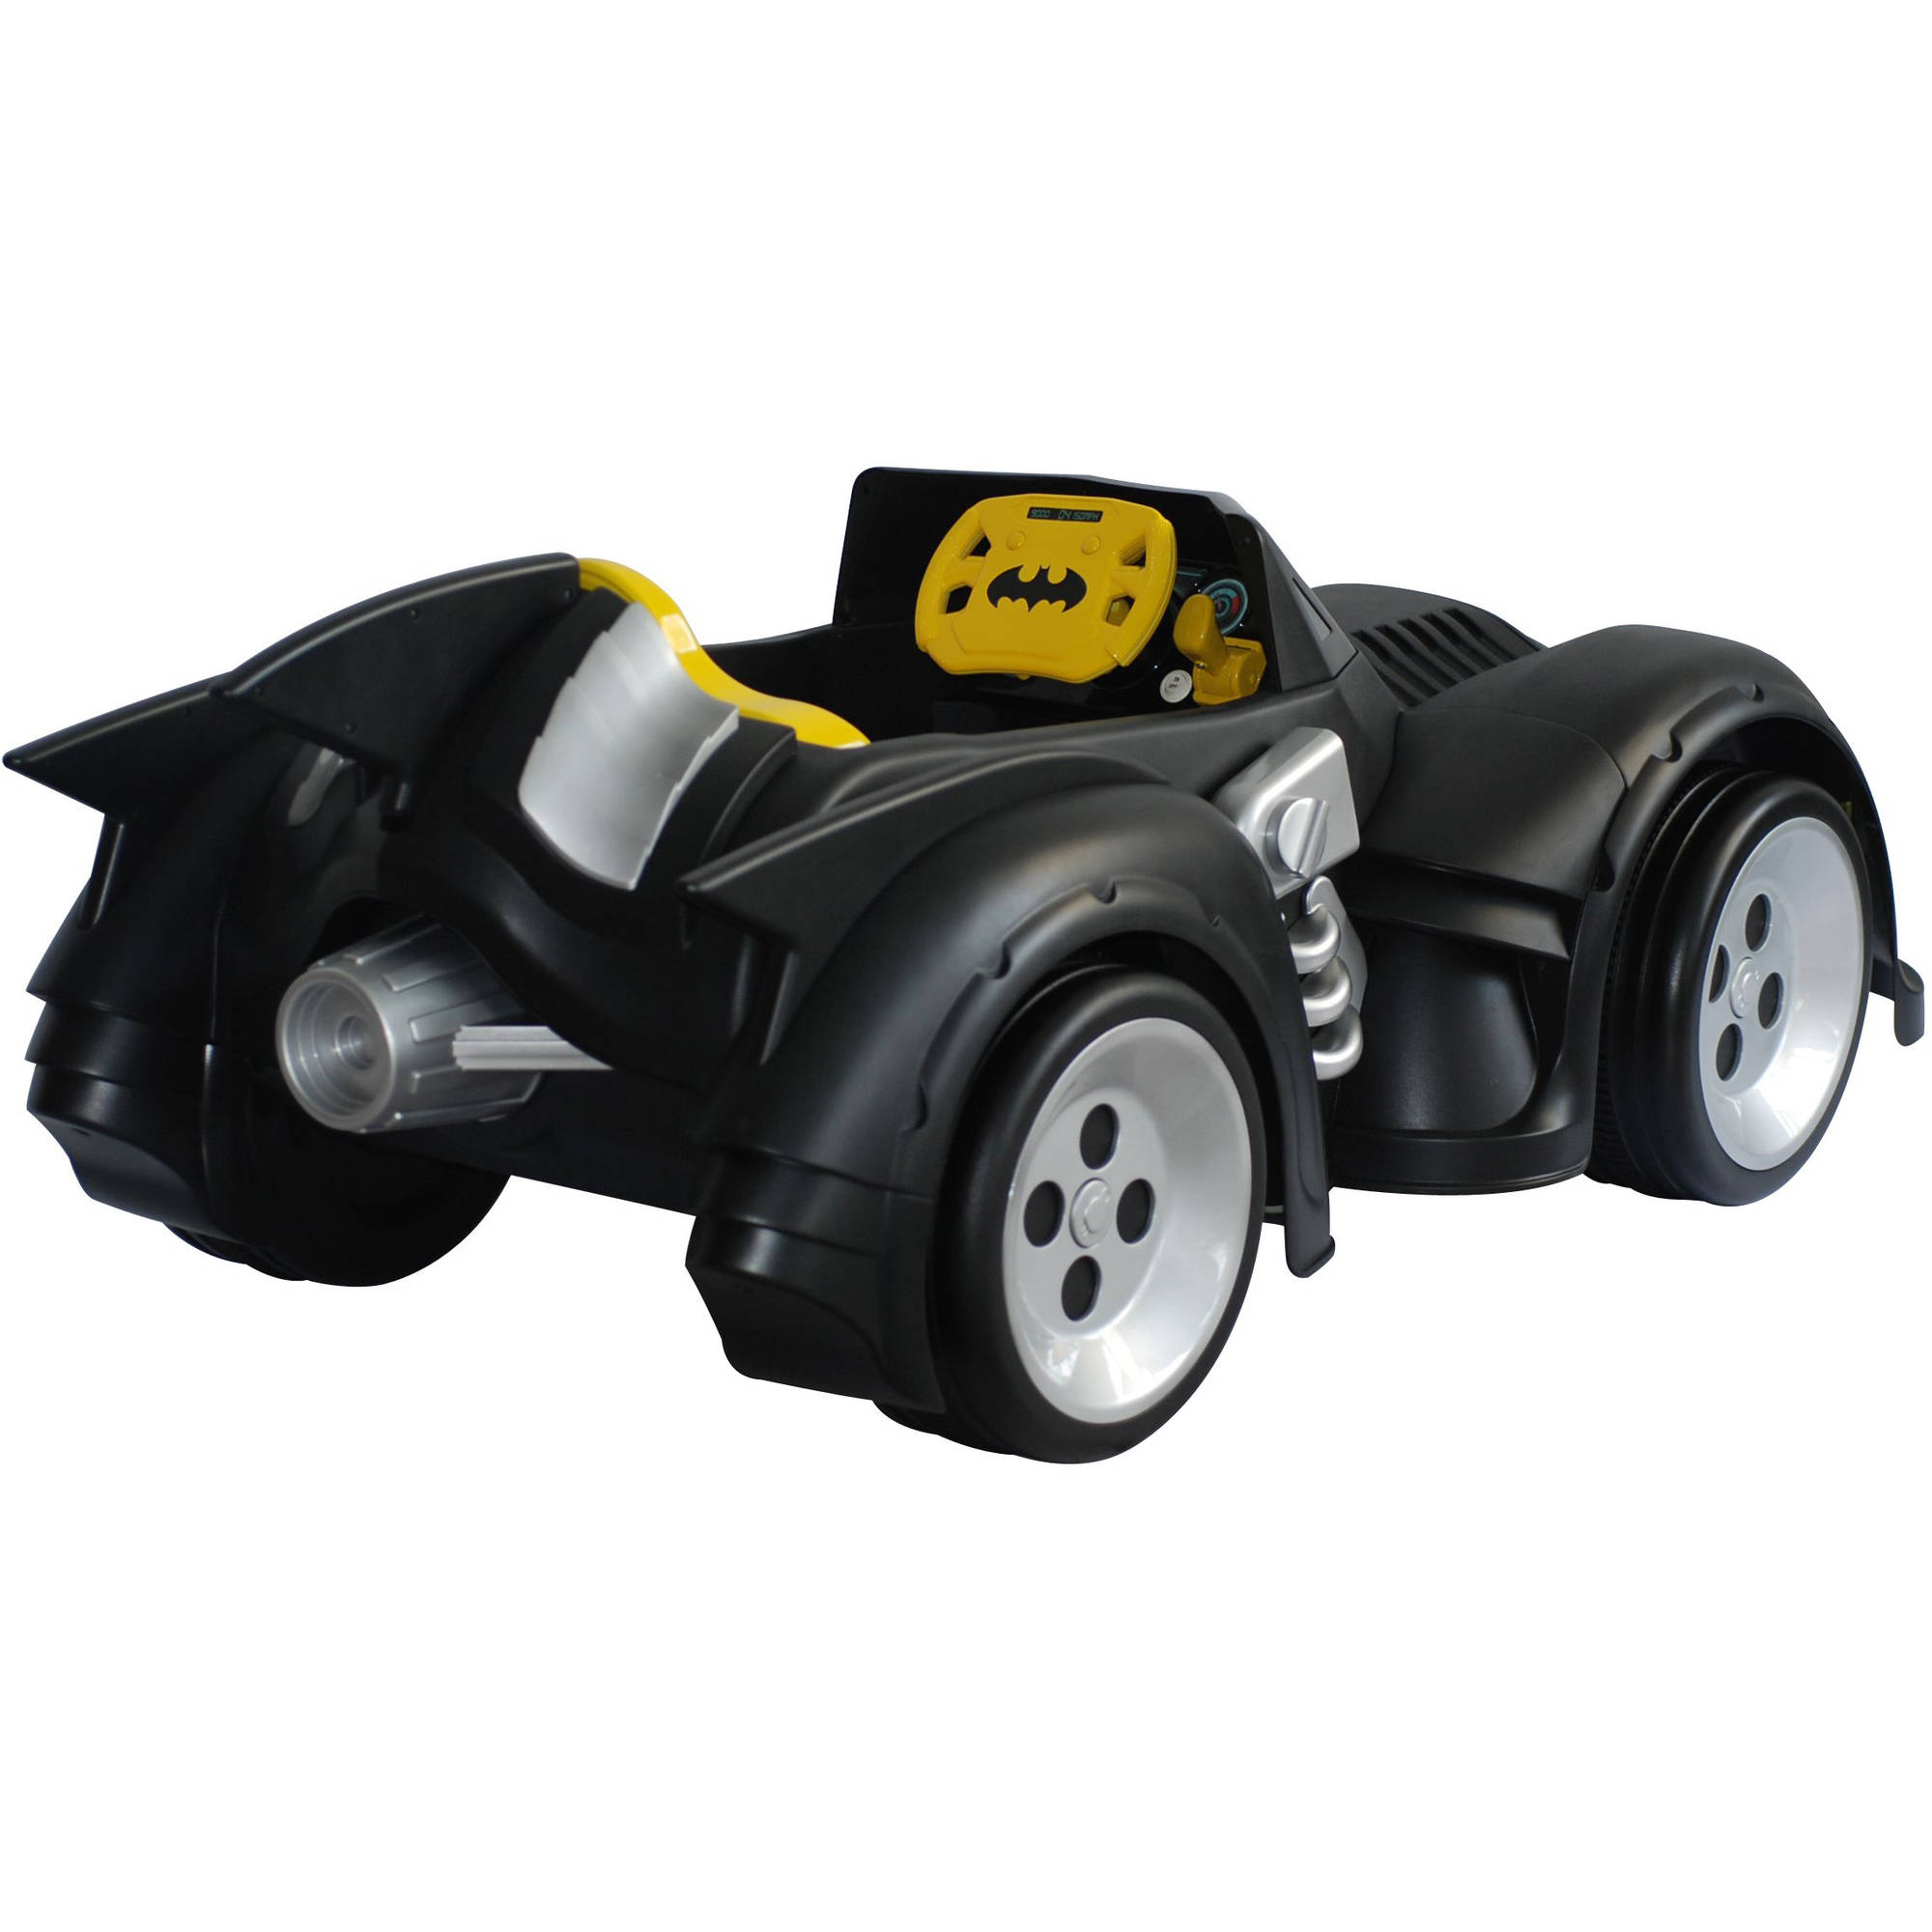 Batman Batmobile 6 Volt Battery Powered Ride On Electric Club Car Troubleshooting Guide